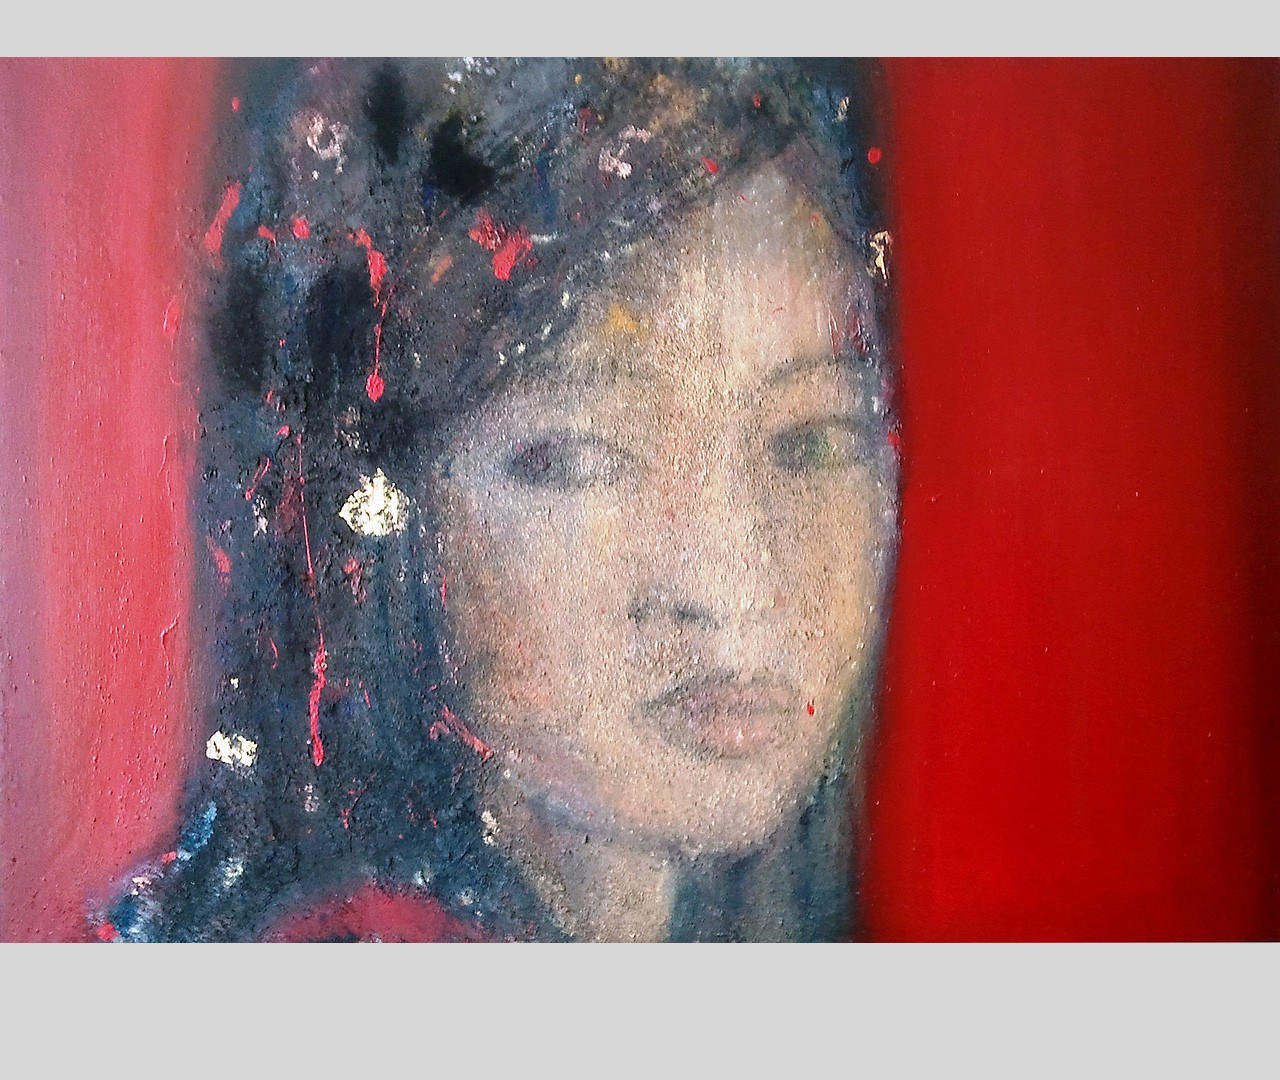 01oriental head IV, oil, pigments and gold plates over canvas, 170x120, 6000 eurs. 2012